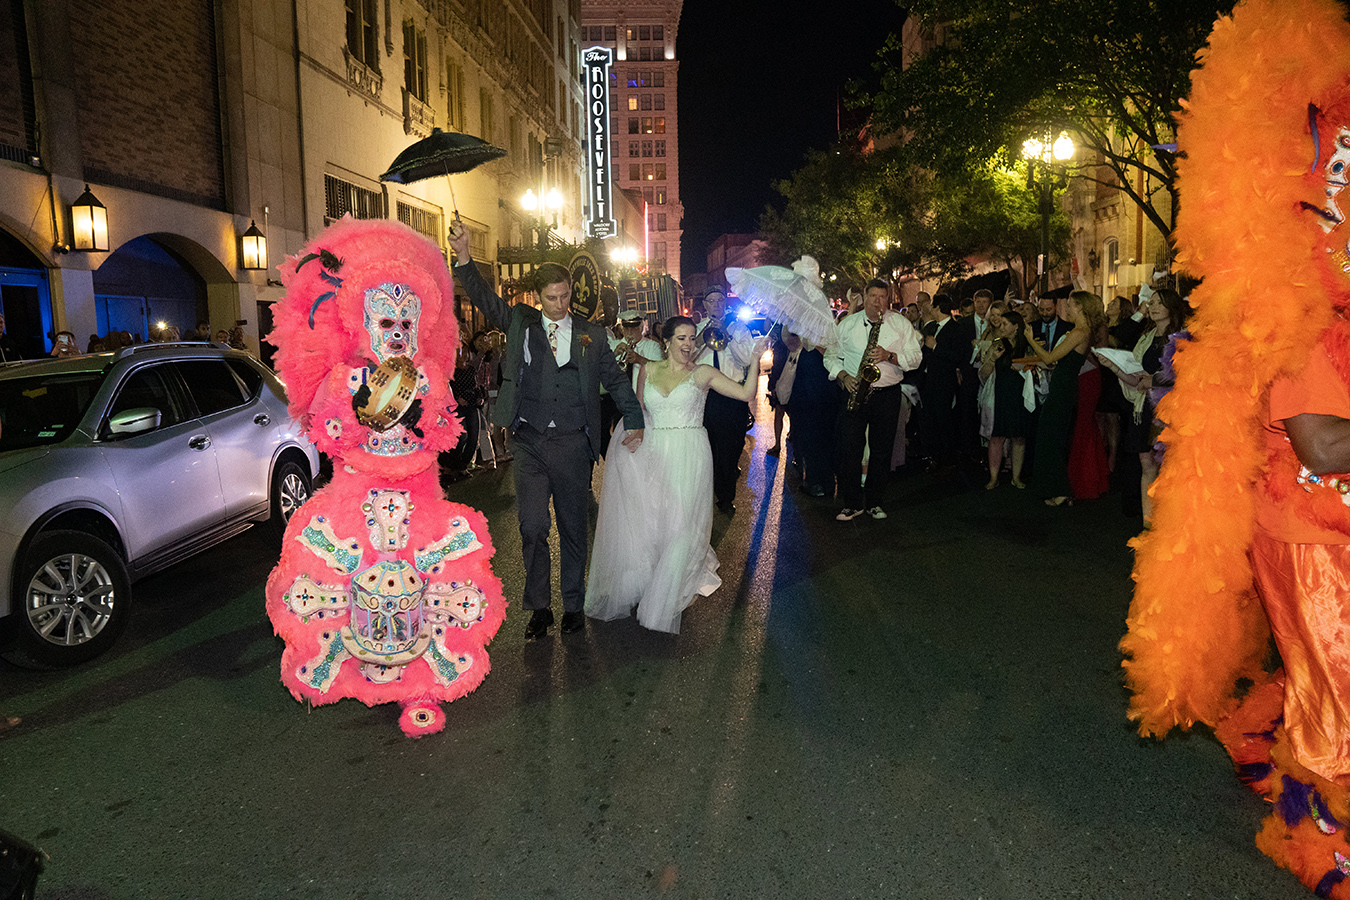 The Storyville Stompers and Mardi Gras Indians led Margaret and Travis' Second Line to the New Orleans Board of Trade.